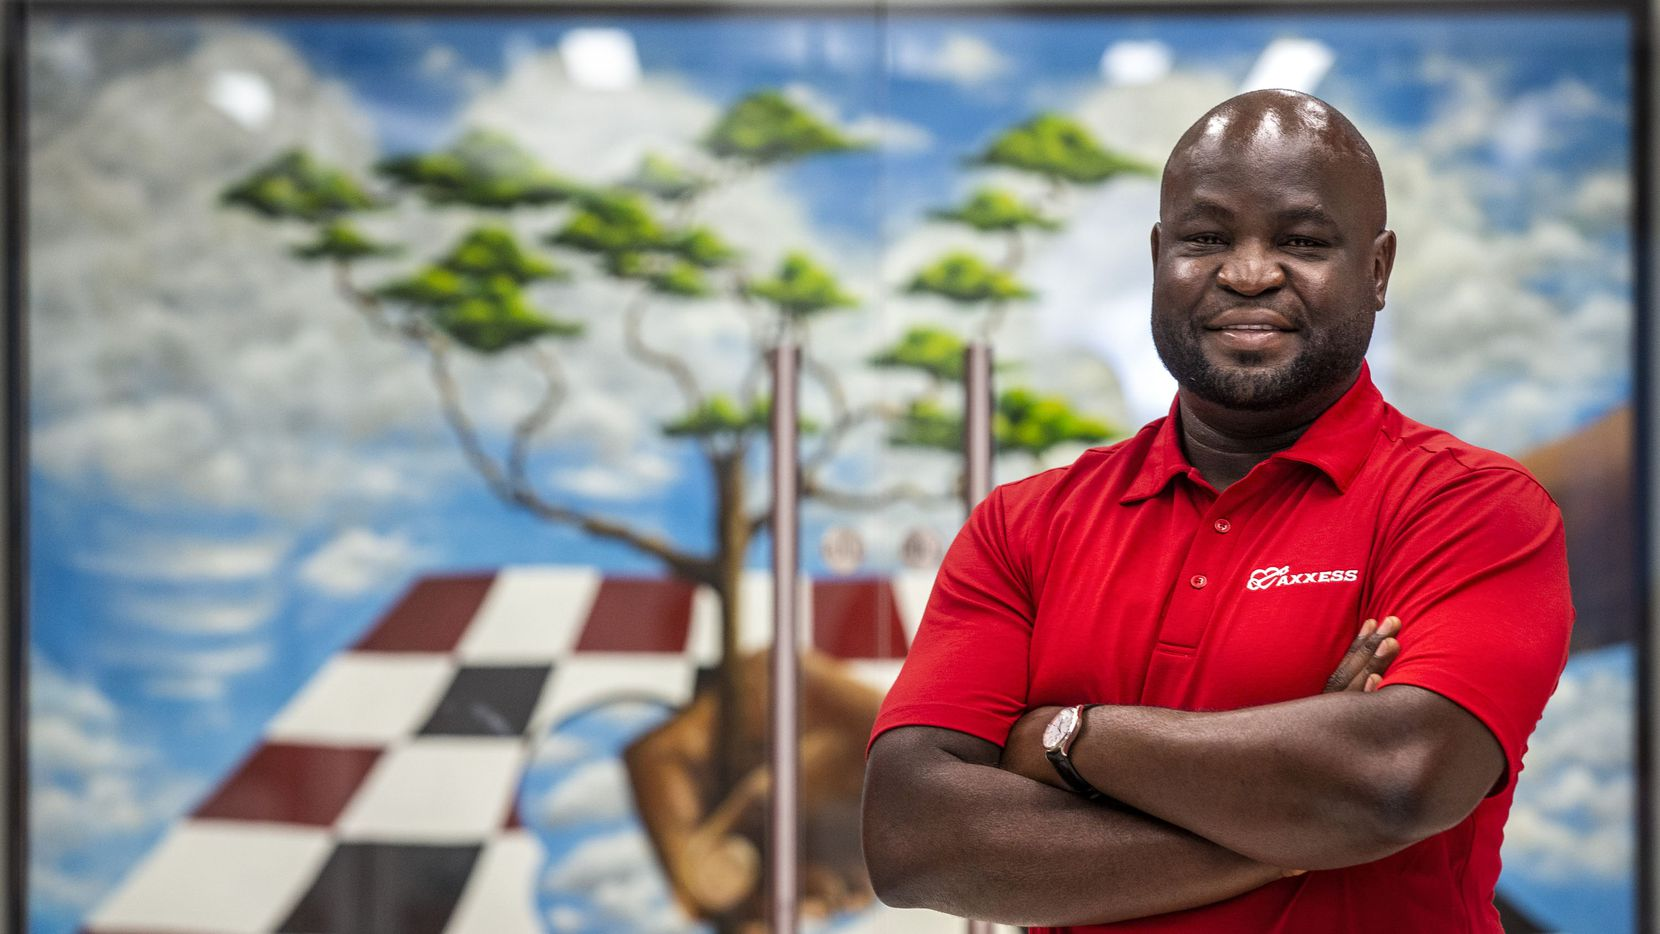 John Olajide, CEO of Axxess and chairman of the Dallas Regional Chamber, posed for a portrait at the Axxess offices in Dallas in July.